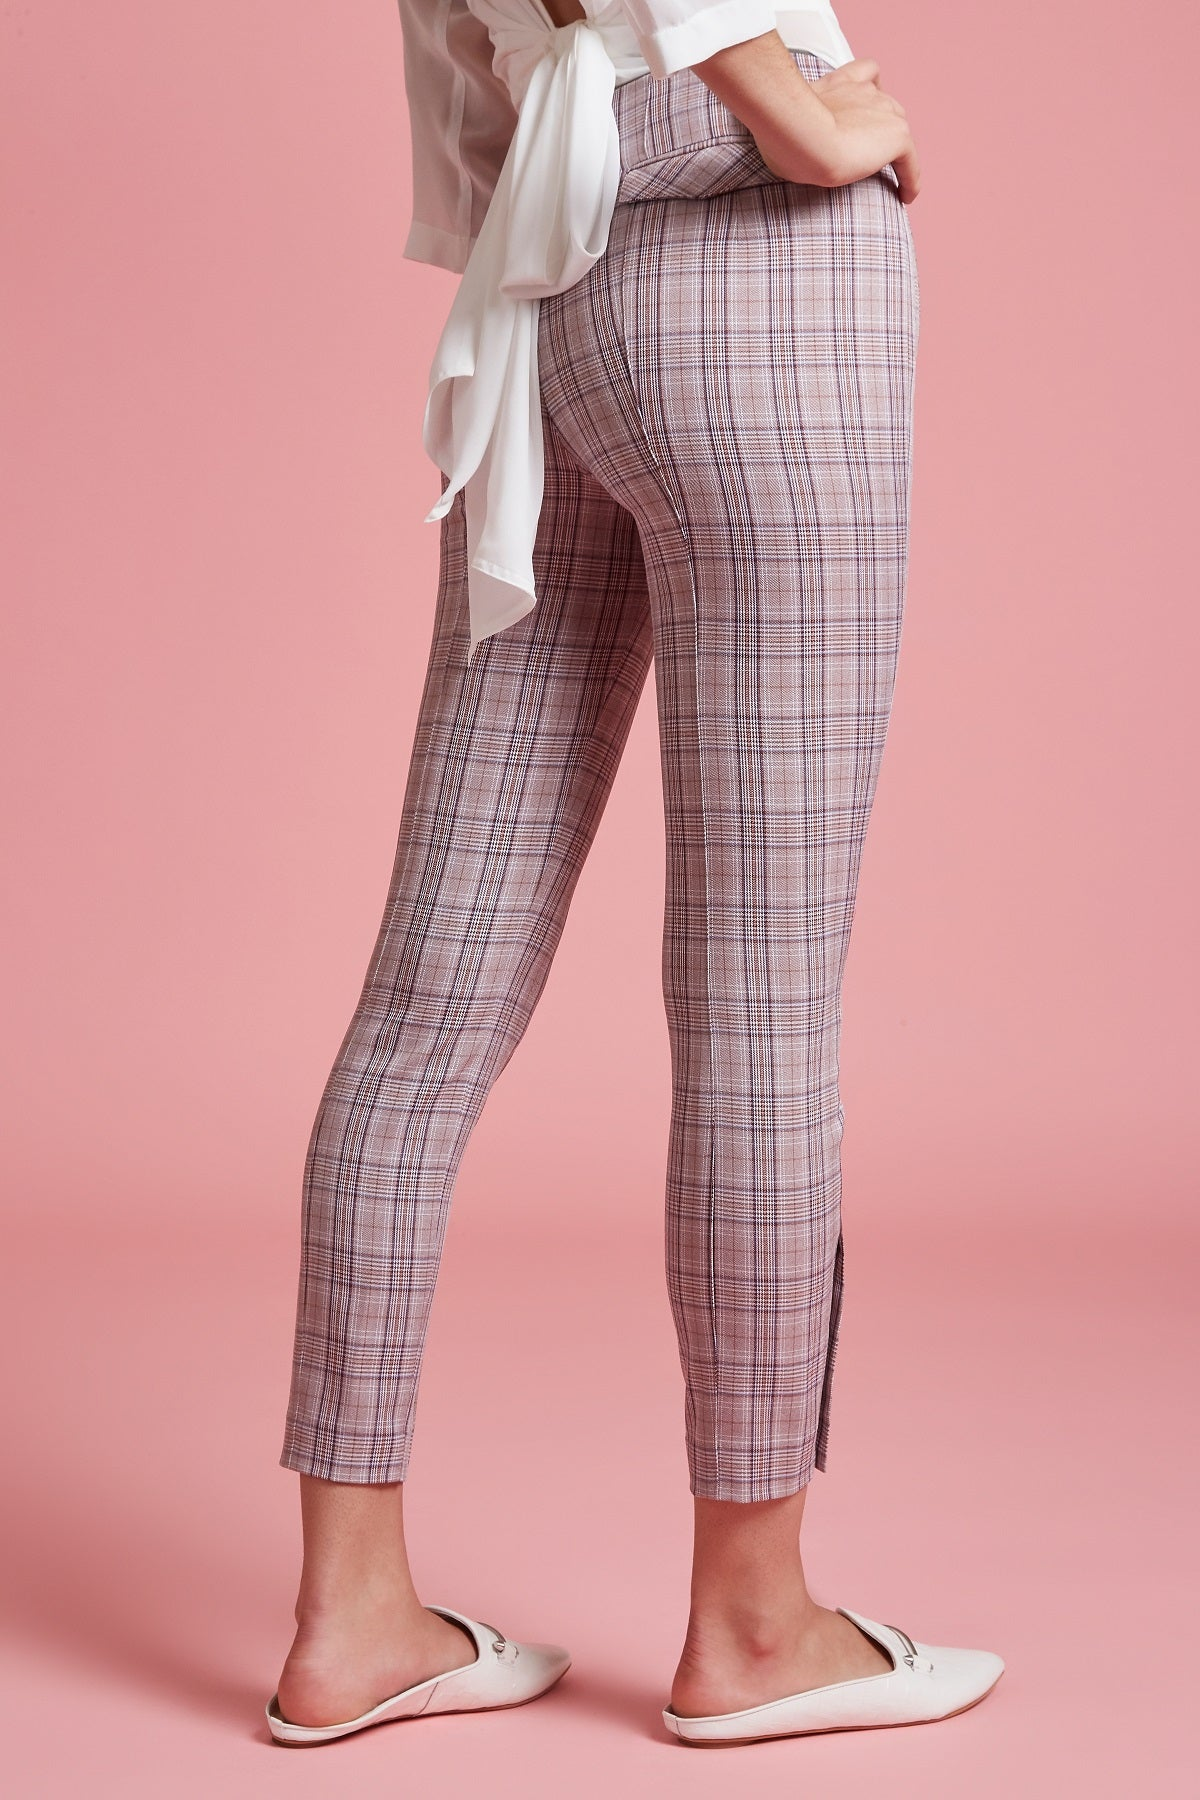 Glen Plaid Tailored Stretch Pant - Final Sale